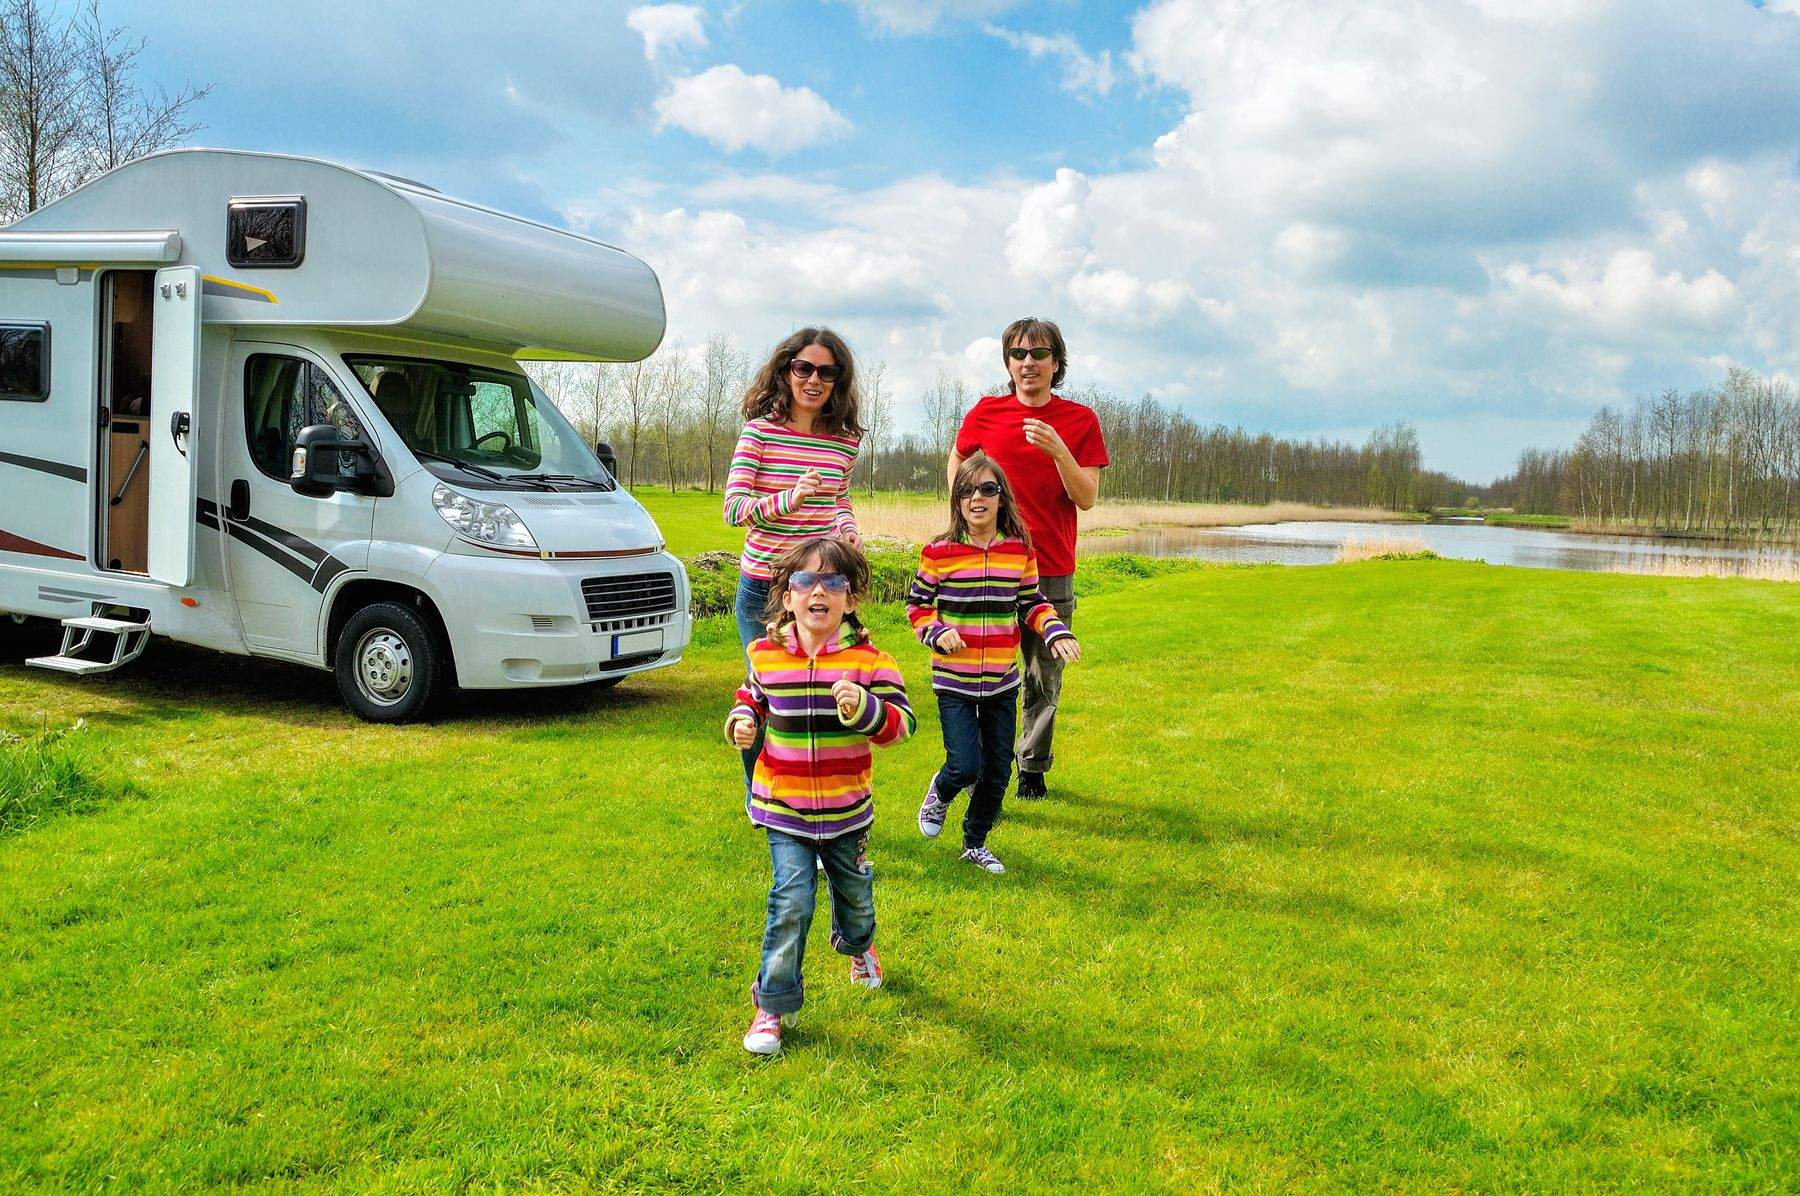 A family of four RV camping outdoors